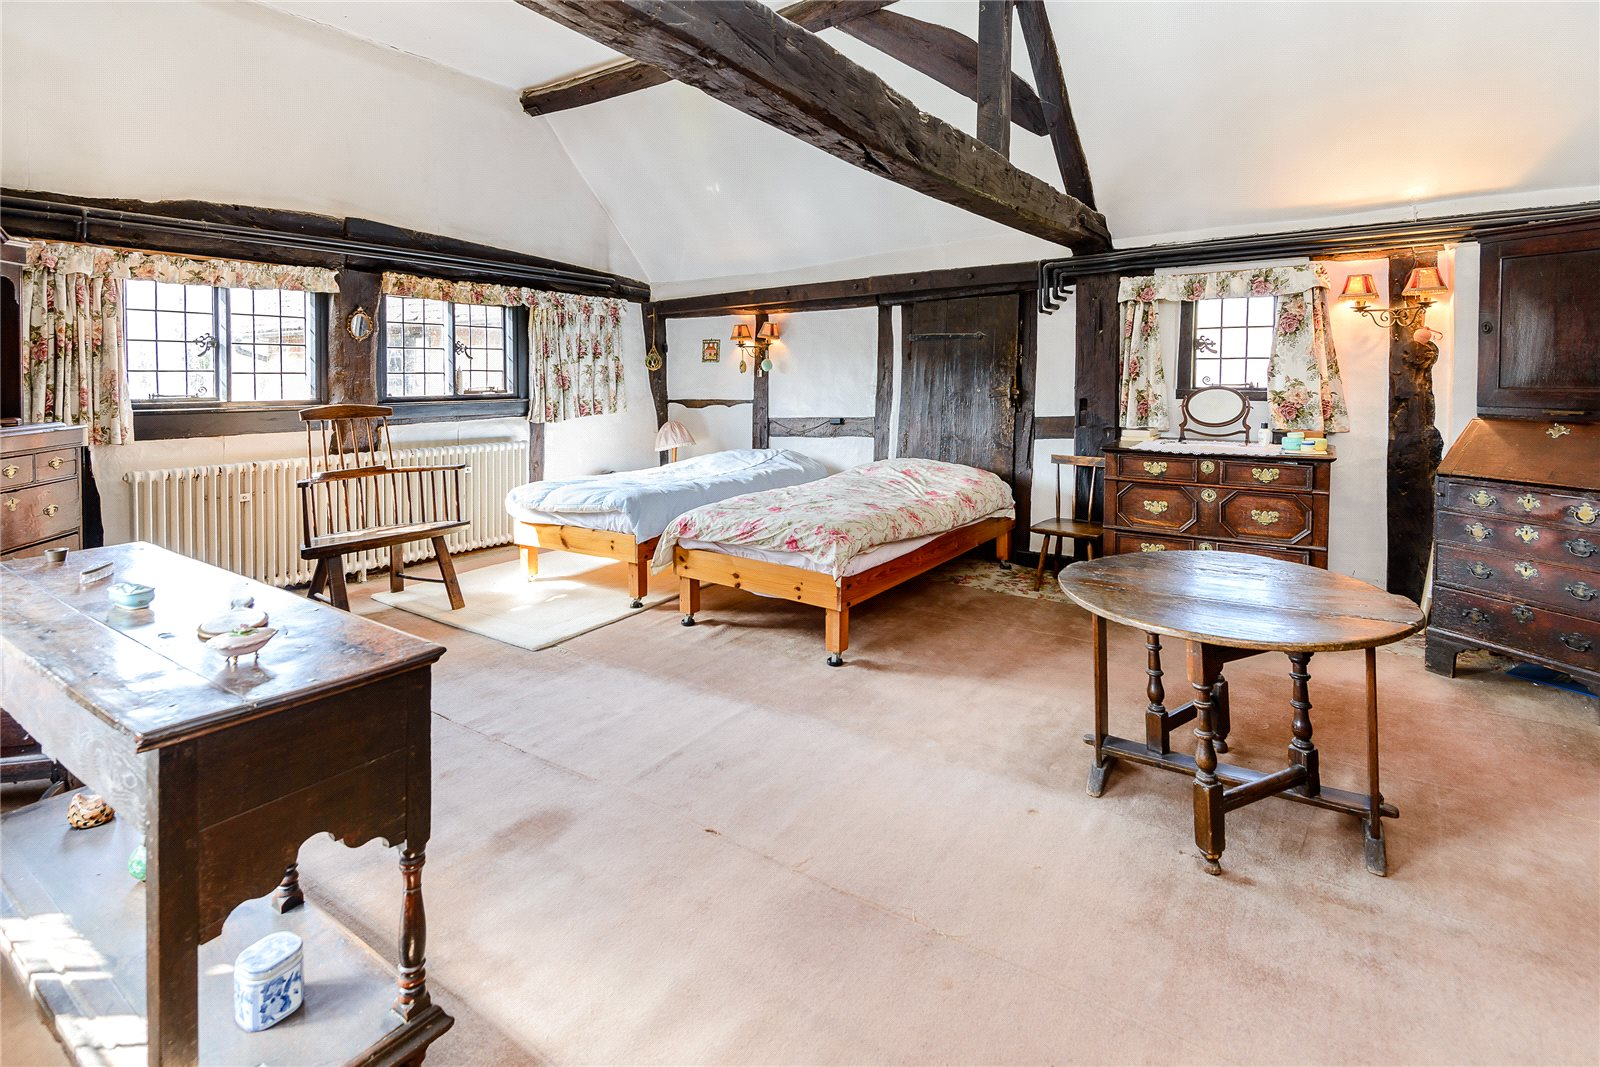 Additional photo for property listing at Old Hatch Farm, Dorking Road, Abinger Hammer, Surrey, RH5 Abinger Hammer, Anh Quốc